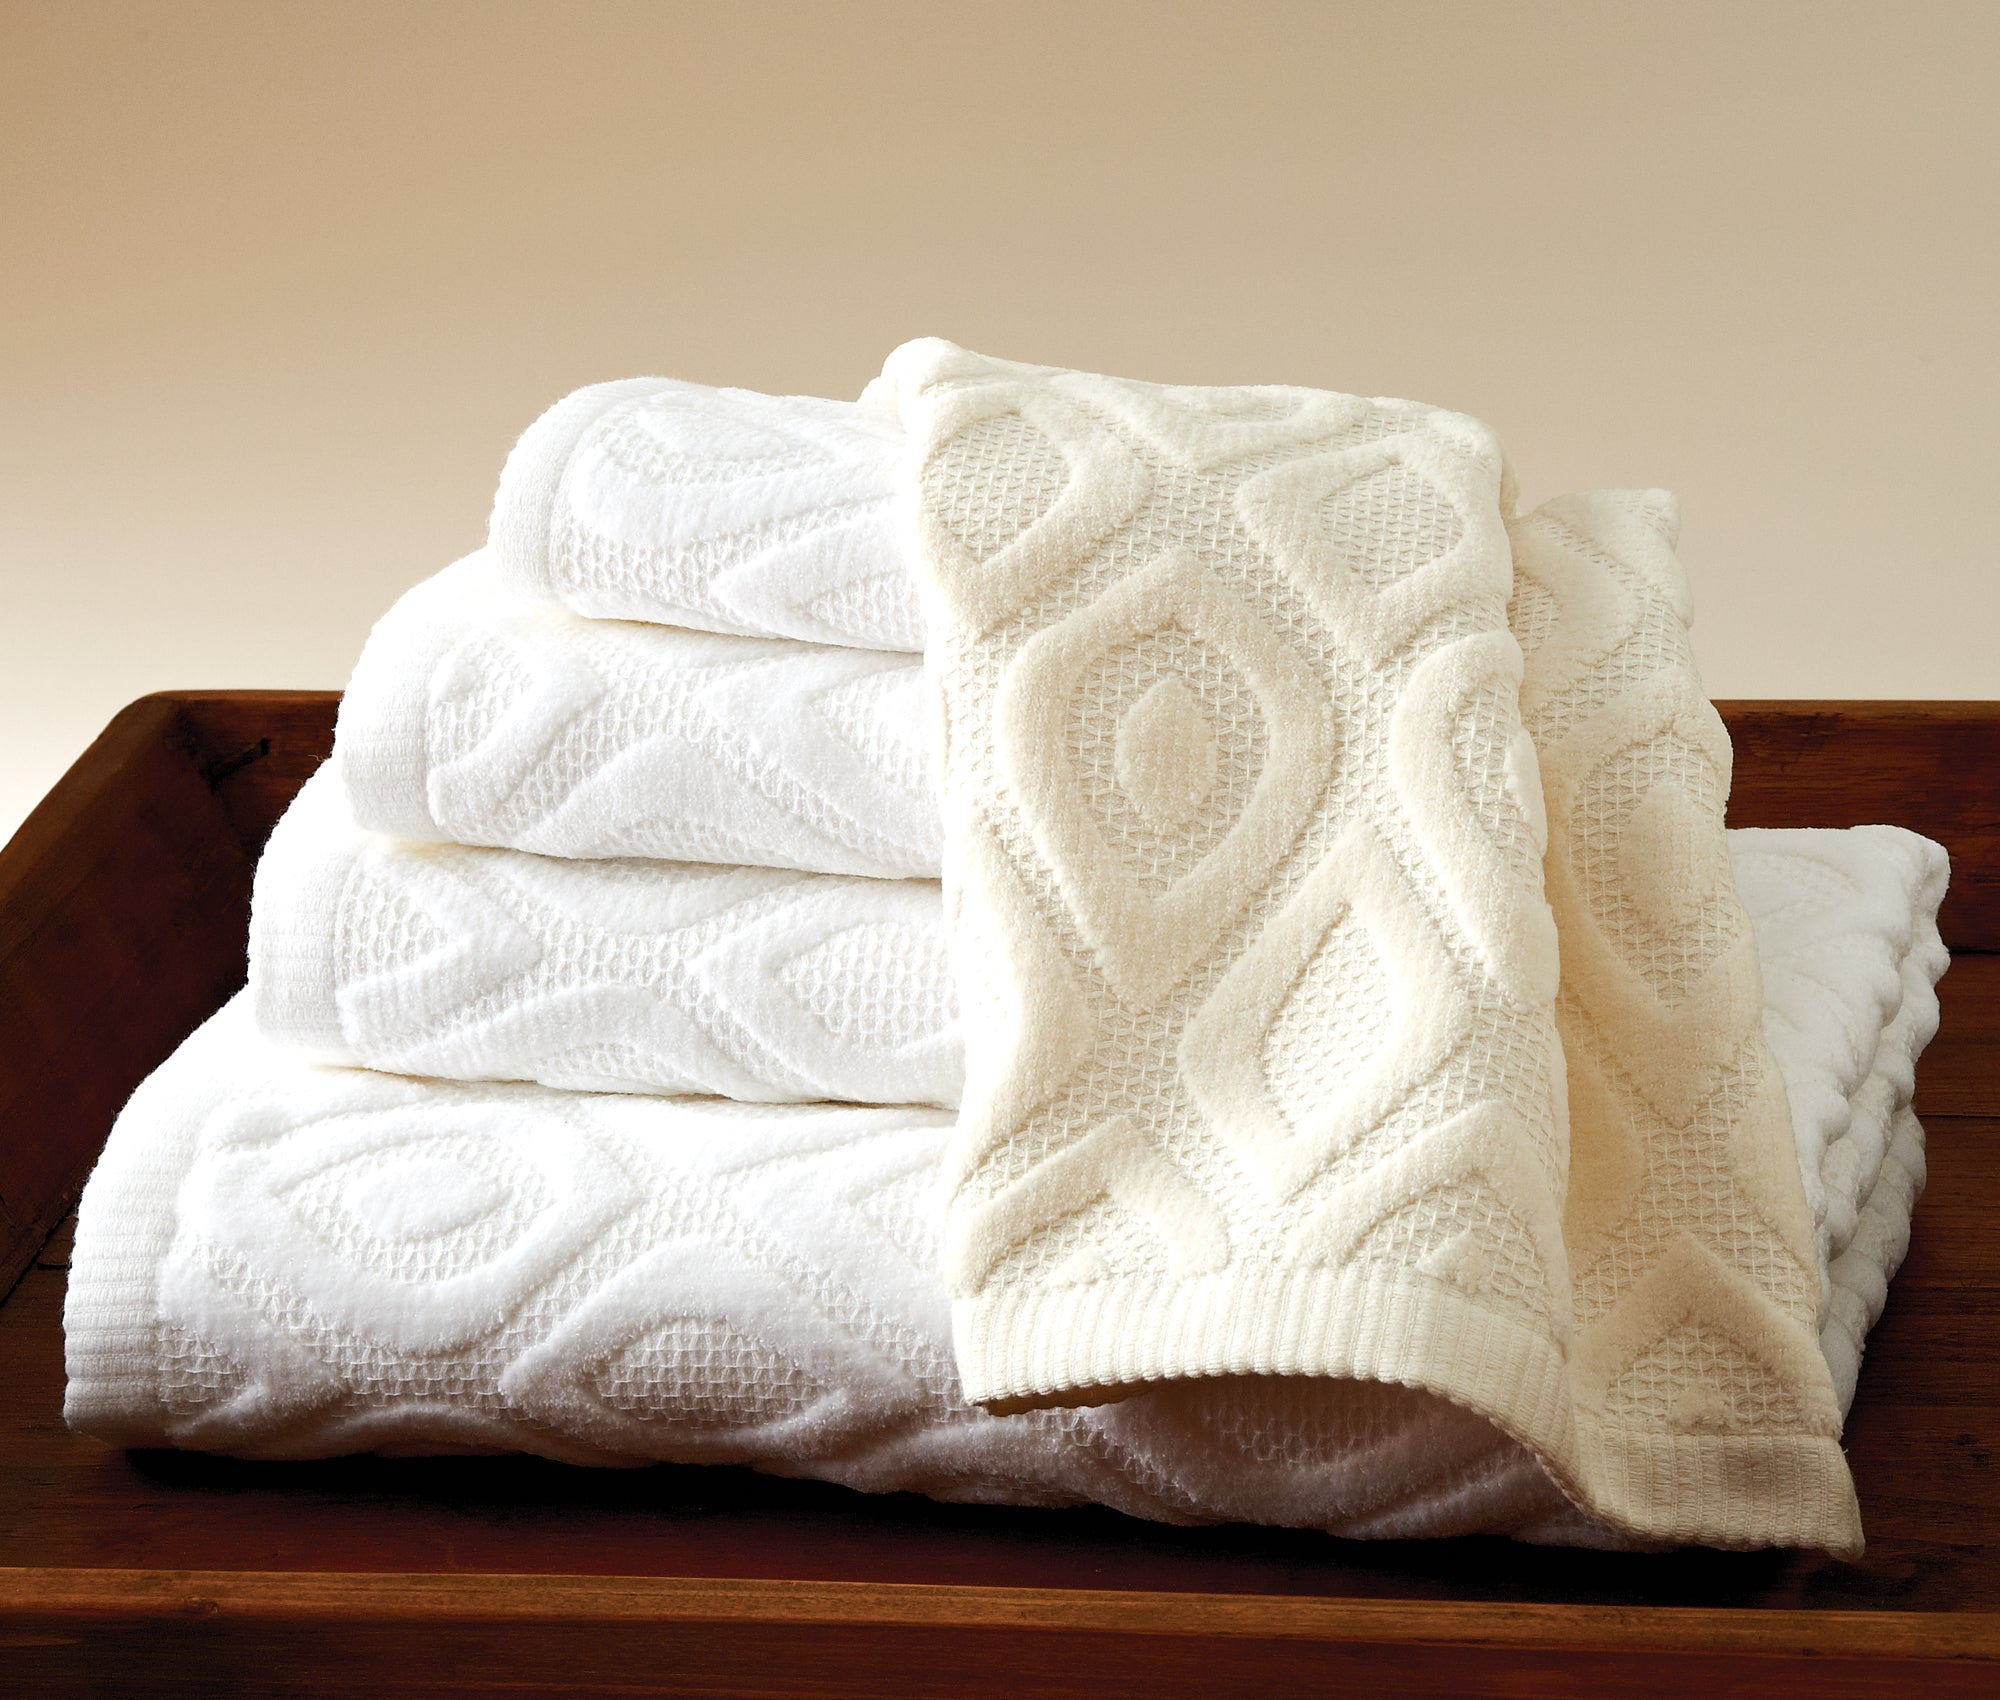 Stack of folded white towels with peacock feather texturing